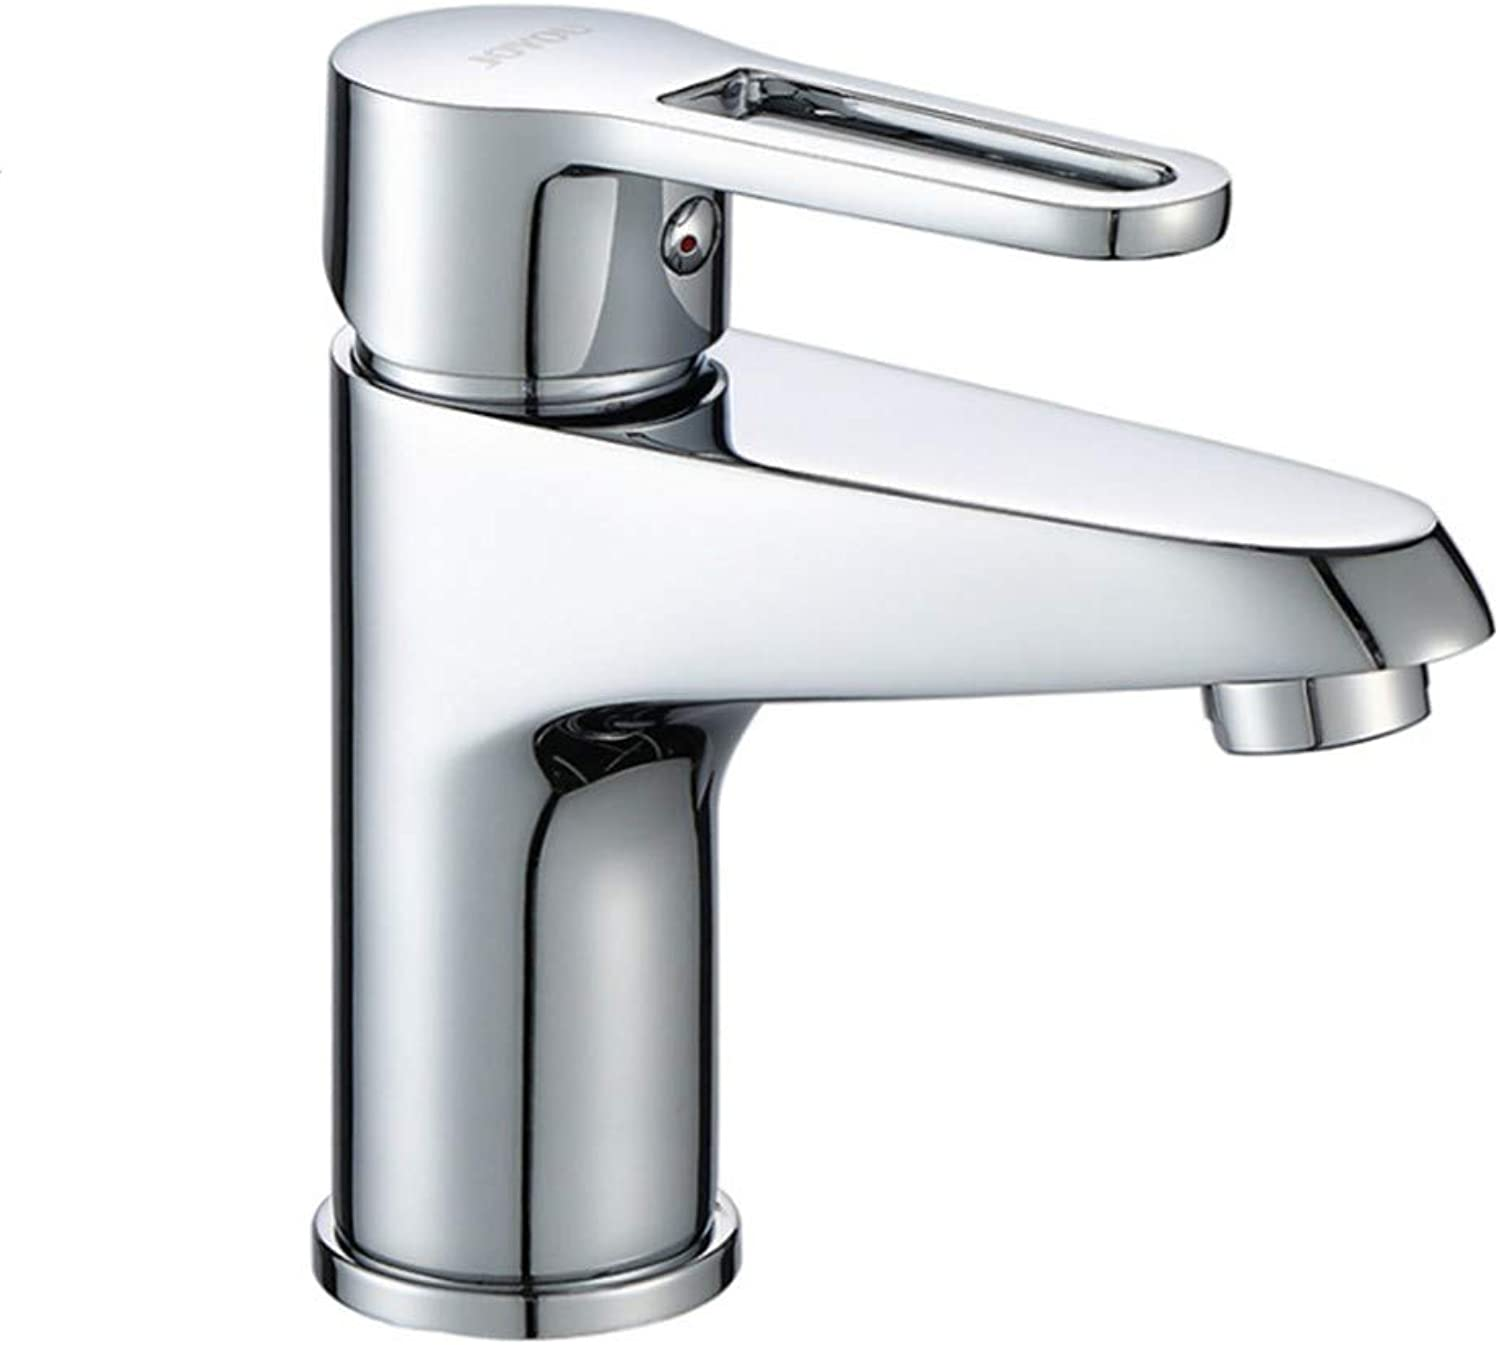 Waste Mono Spout Basinbathroom Washbasin Hot and Cold Faucet Bathroom Counter Basin Faucet